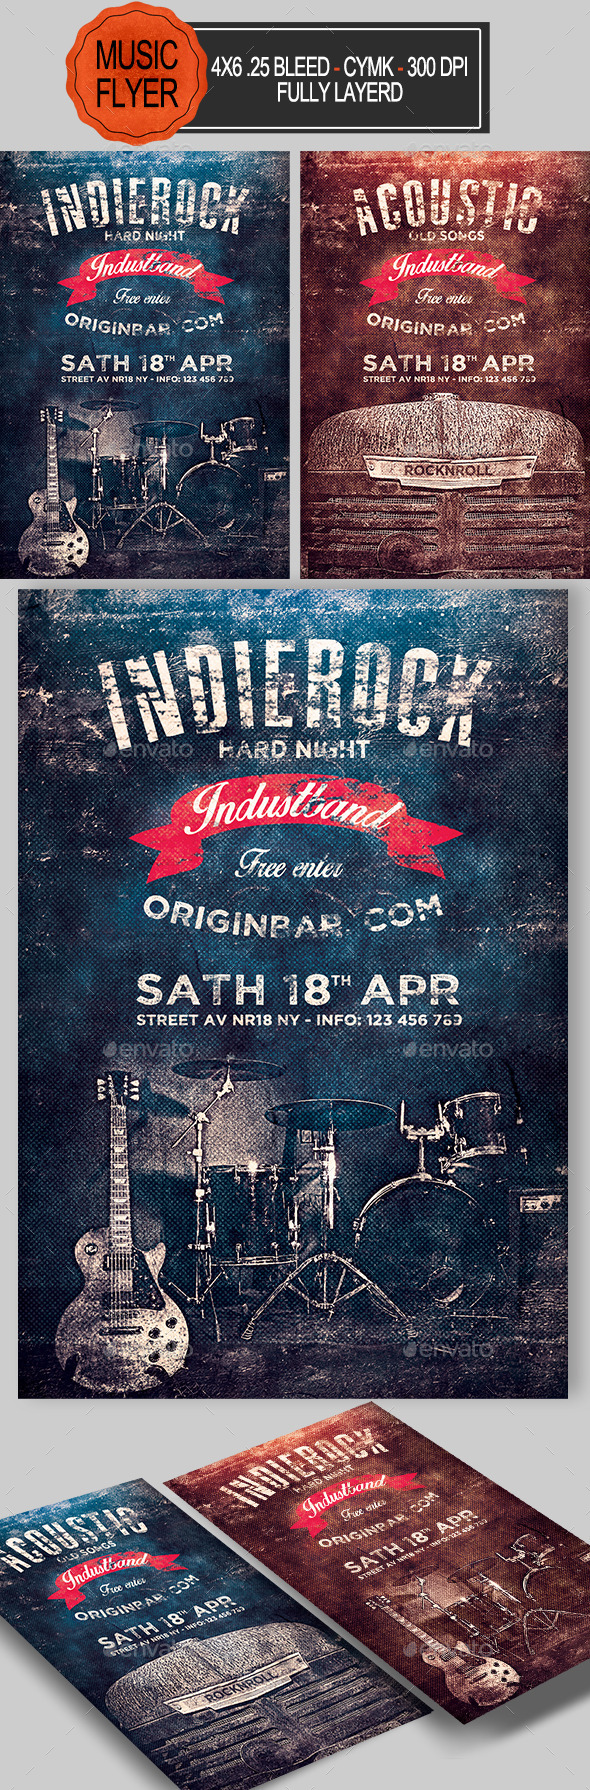 GraphicRiver Indie Rock and Acoustic Flyer 10790272